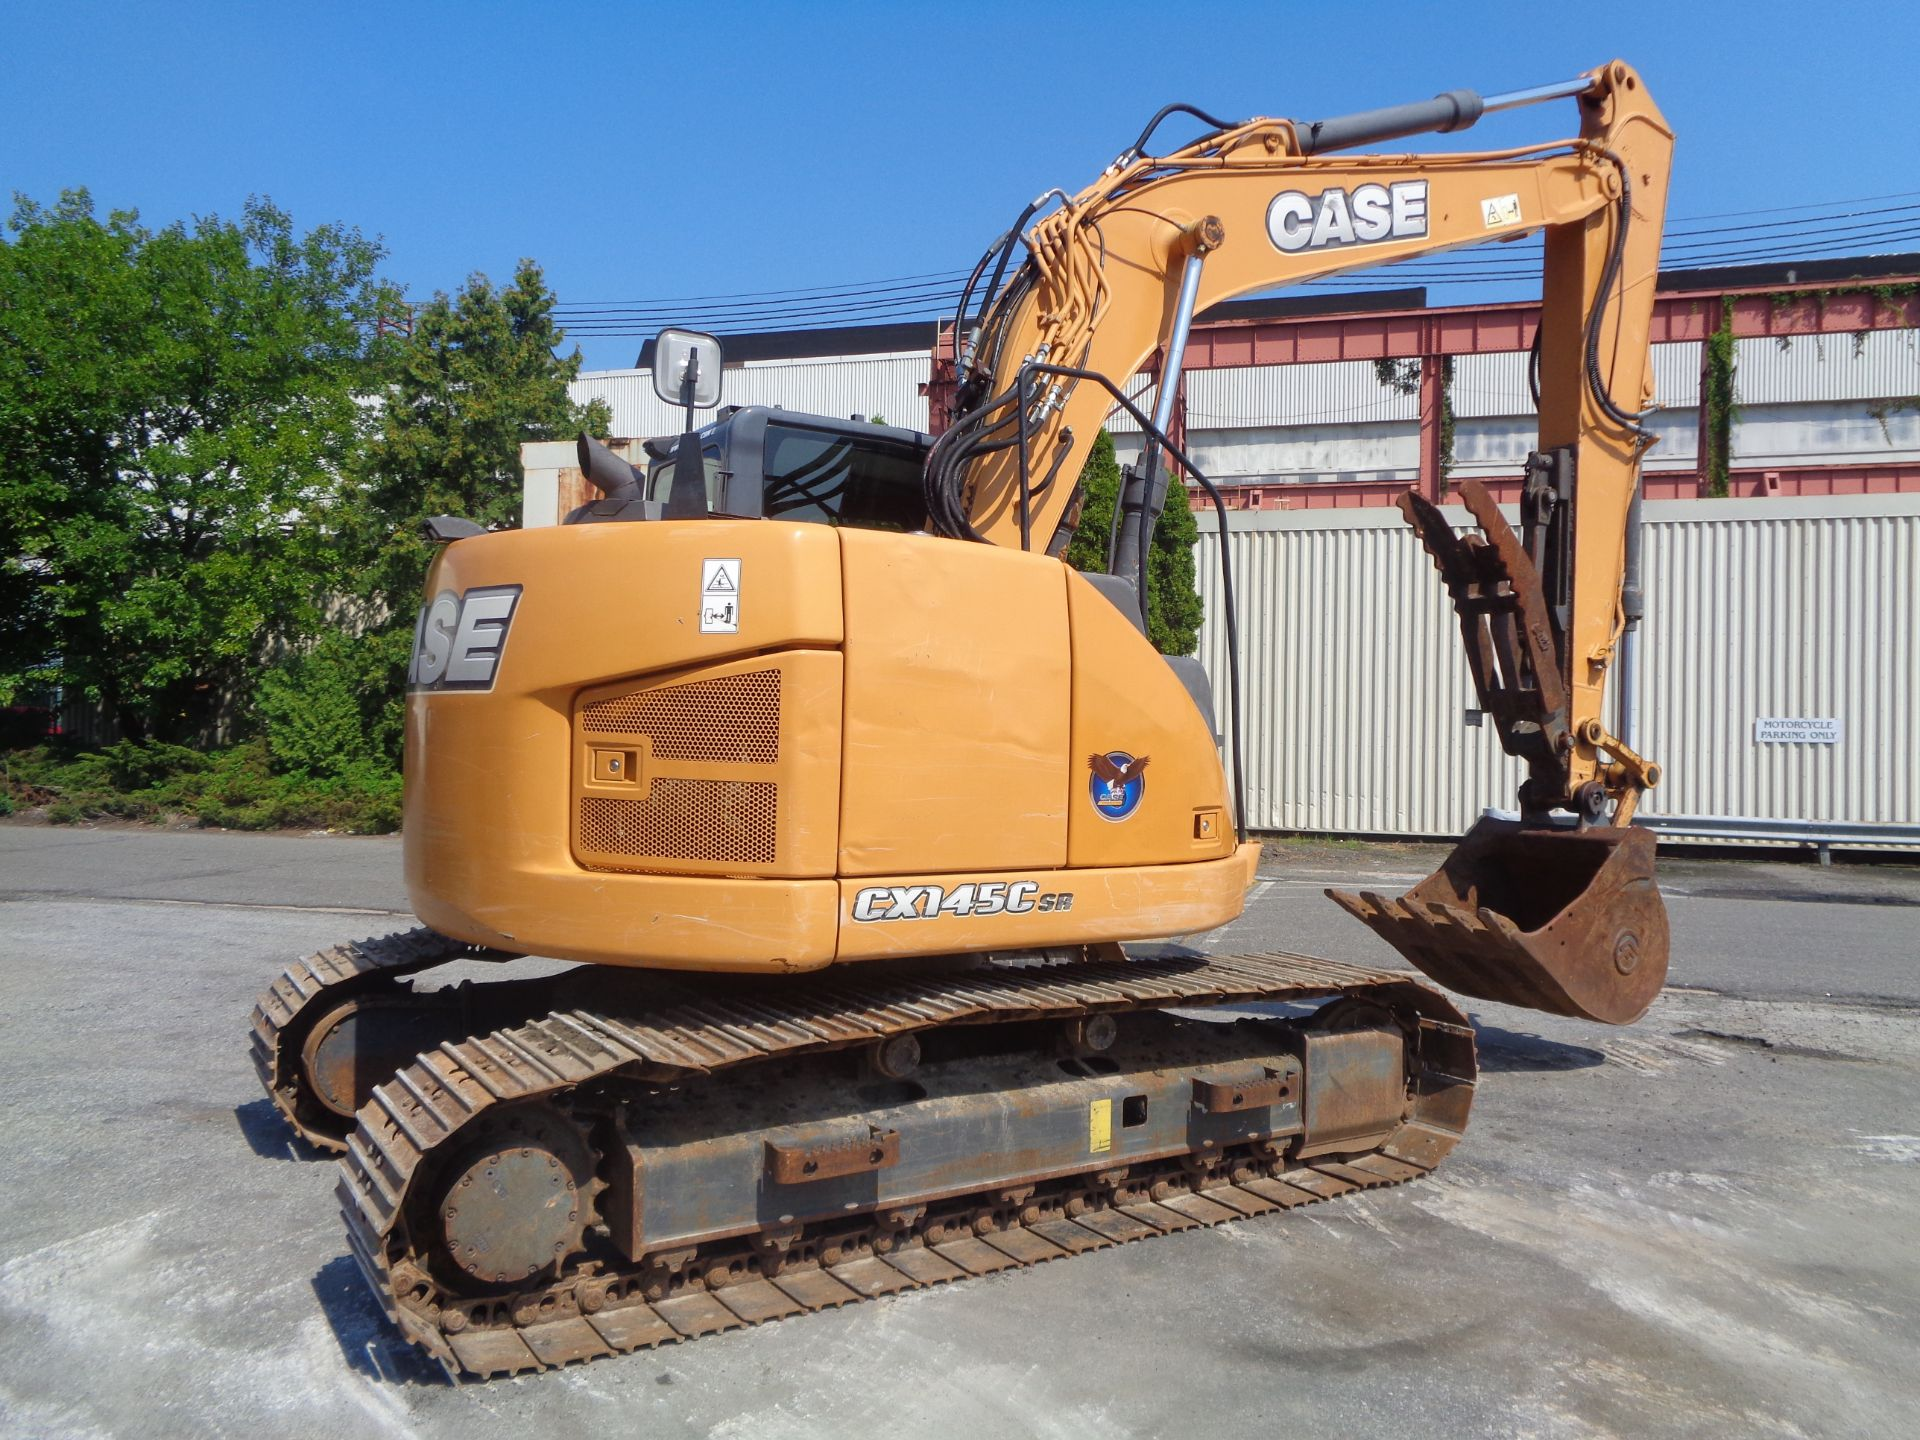 Lot 25 - 2014 Case CX145C Excavator